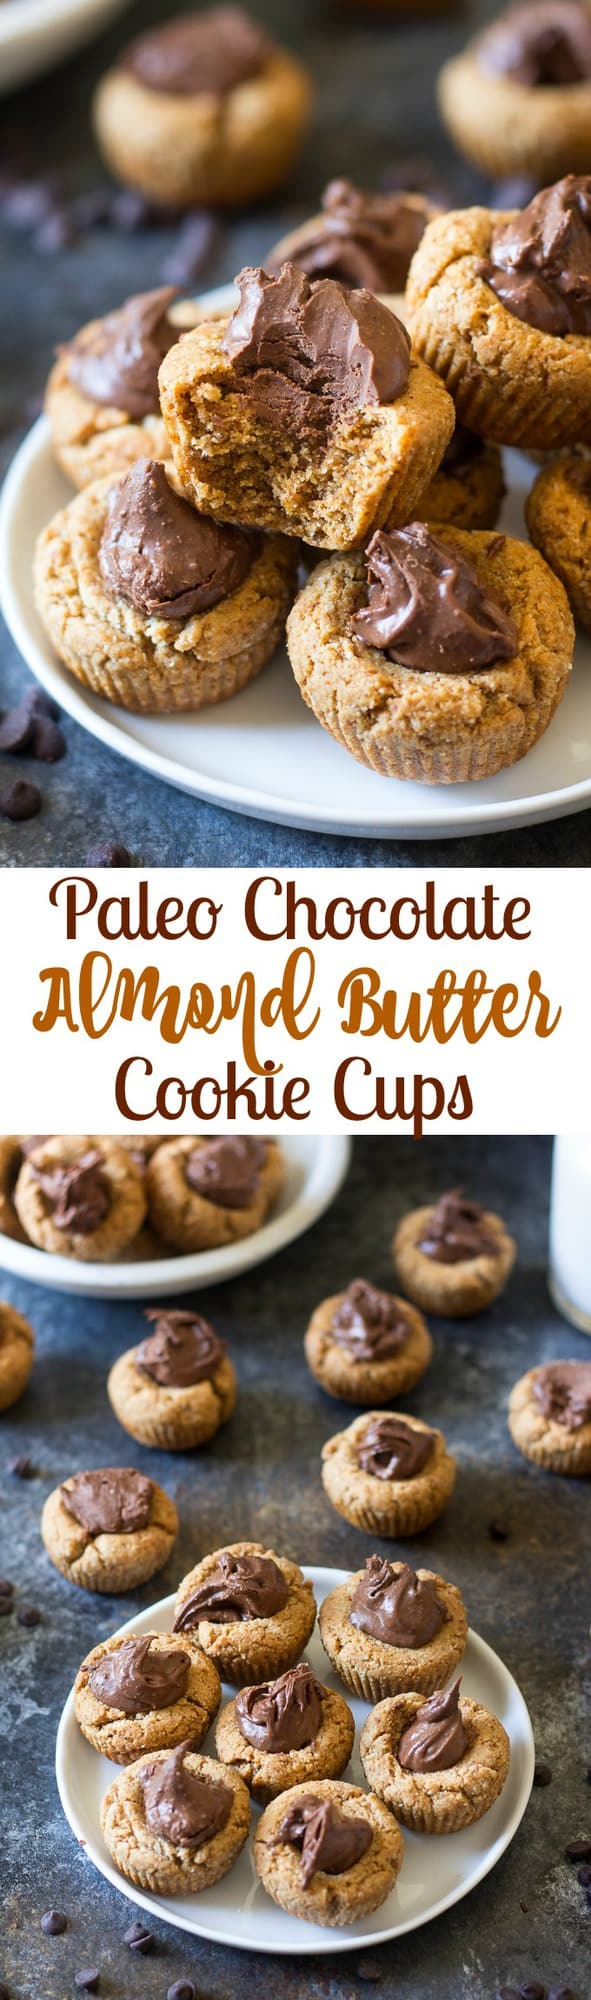 Chocolate Almond Butter Paleo Cookie Cups - chewy almond cookie cup with almond butter fudge filling. Gluten free, grain free, dairy free. #BobsHolidayCheer